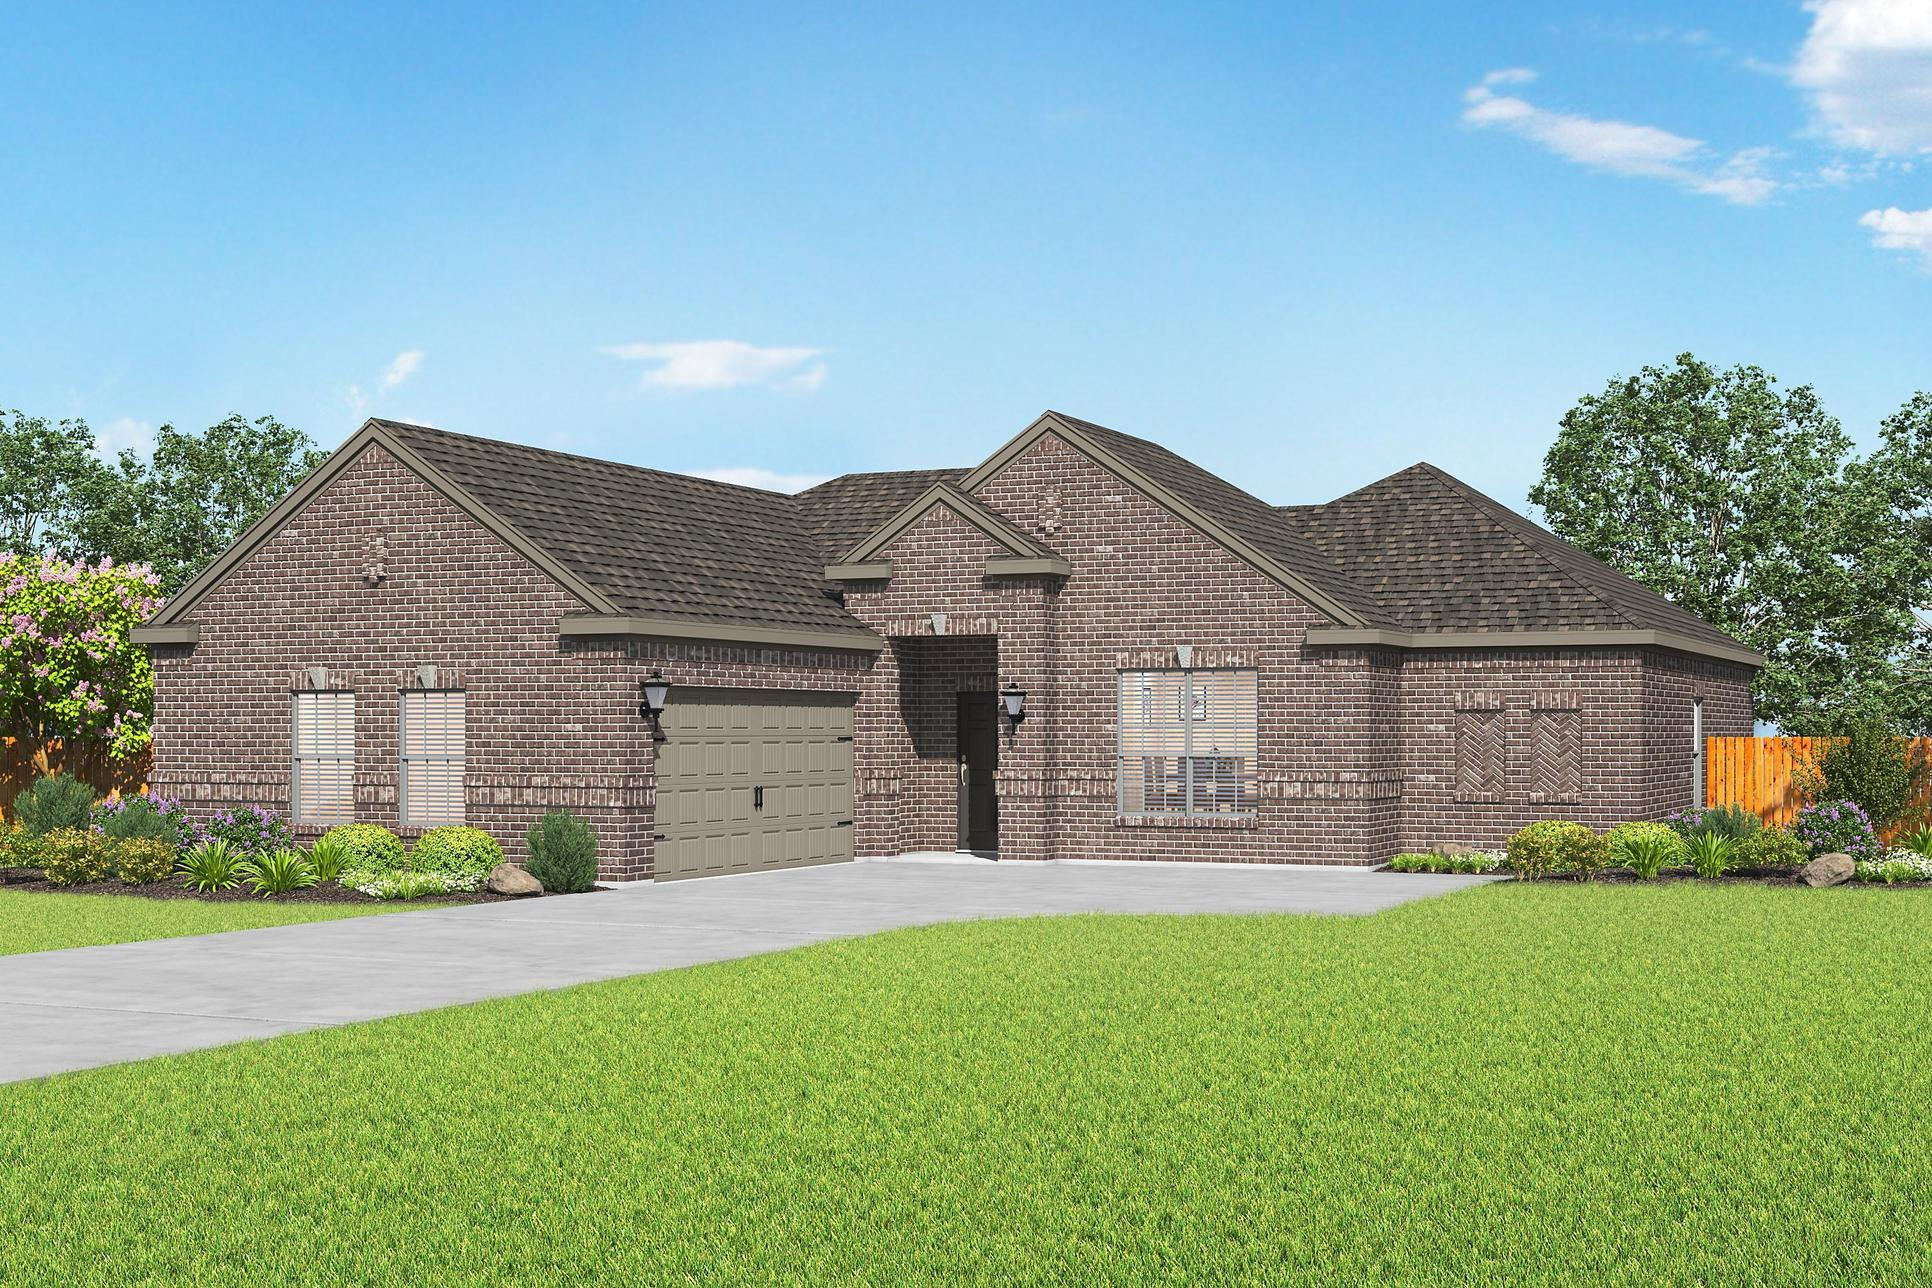 The Redbud by LGI Homes:The Redbud is a gorgeous, single-story home at Hampton Meadows!